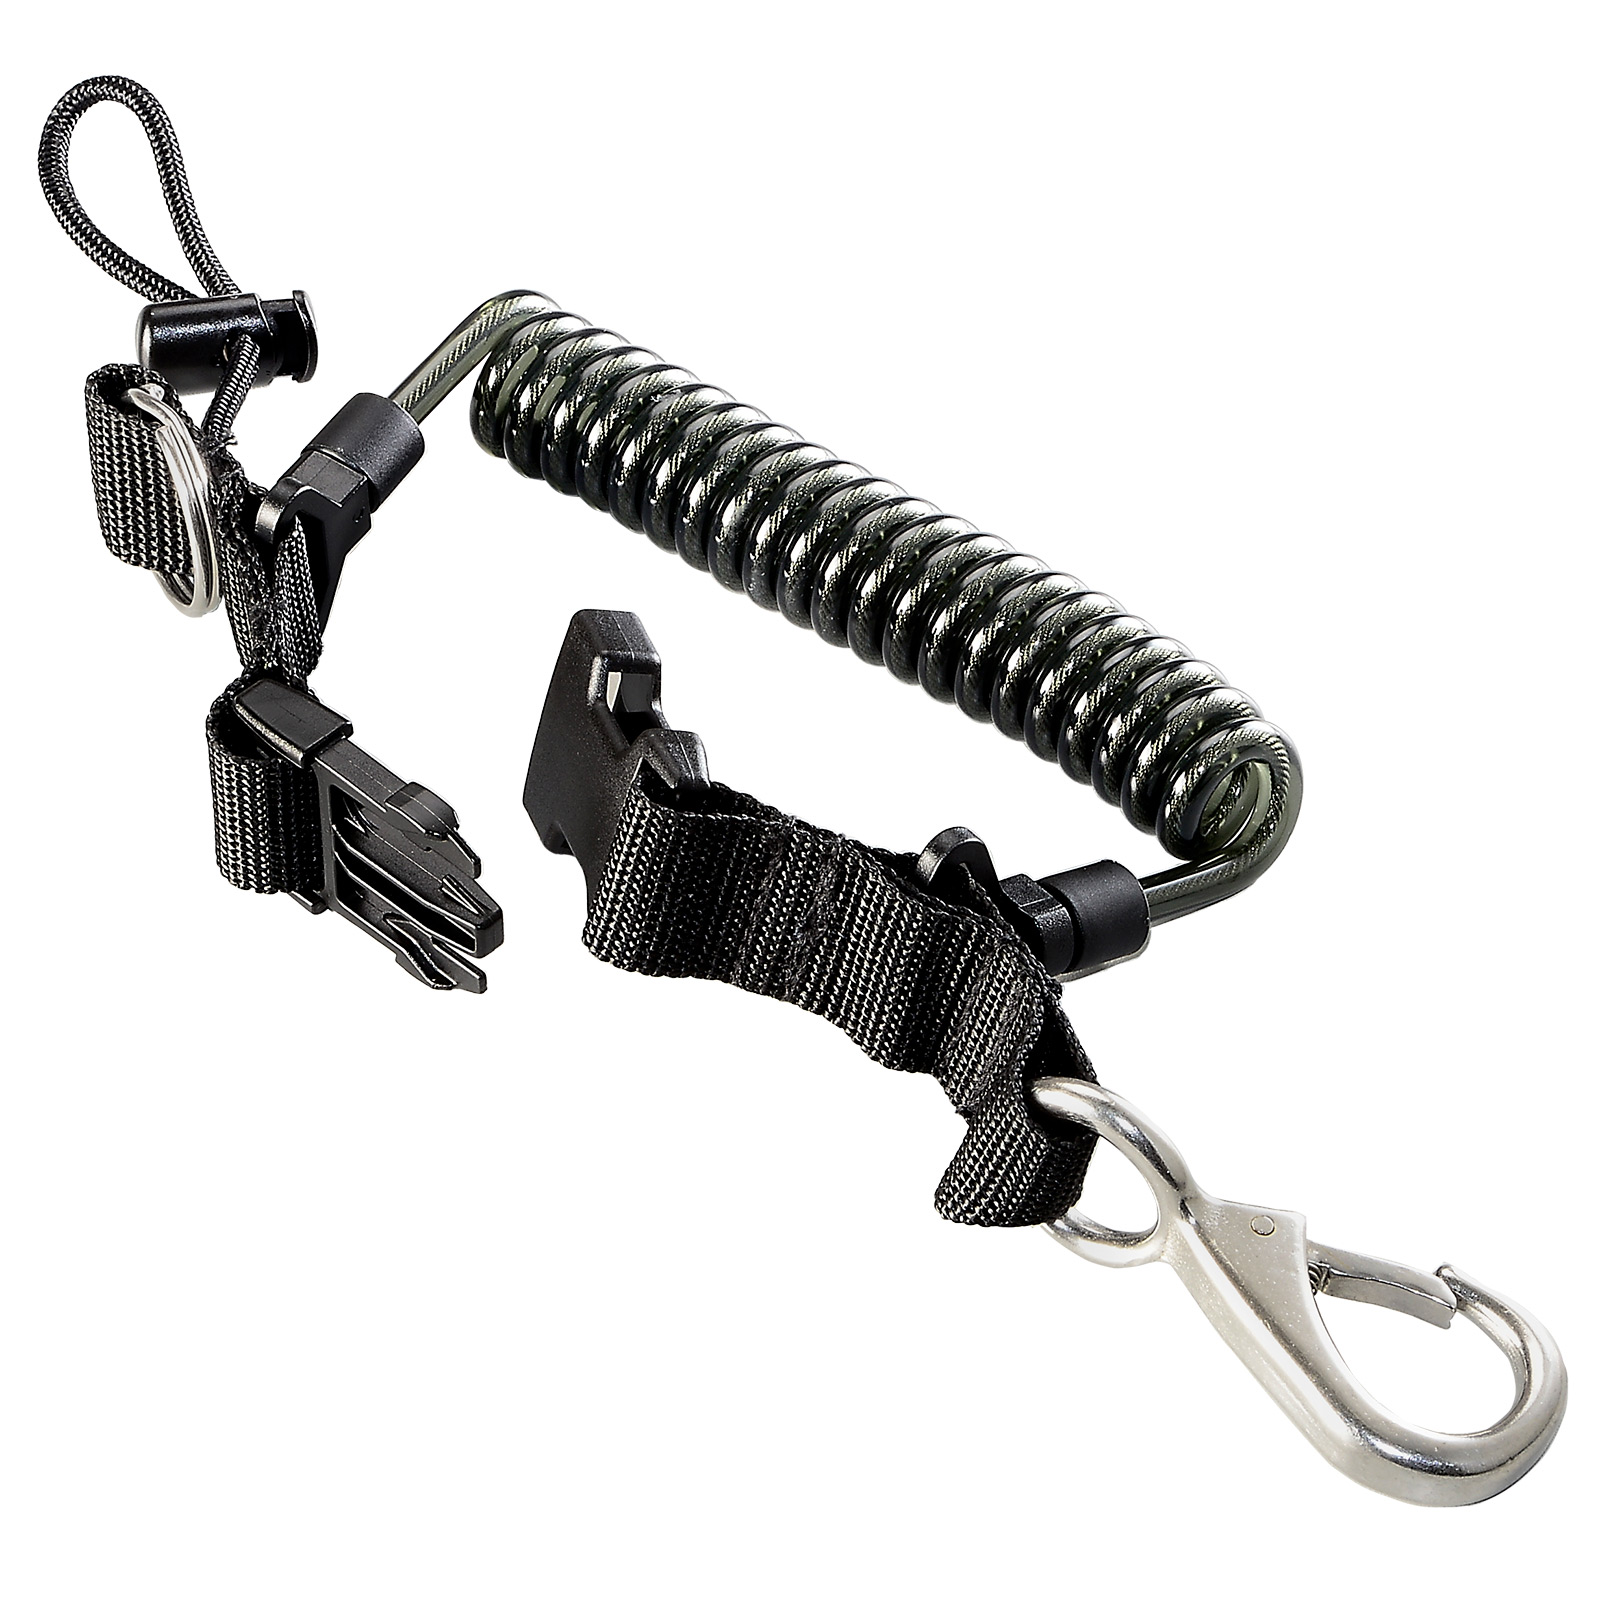 Stainless Wire-Reinforced Coil Lanyard